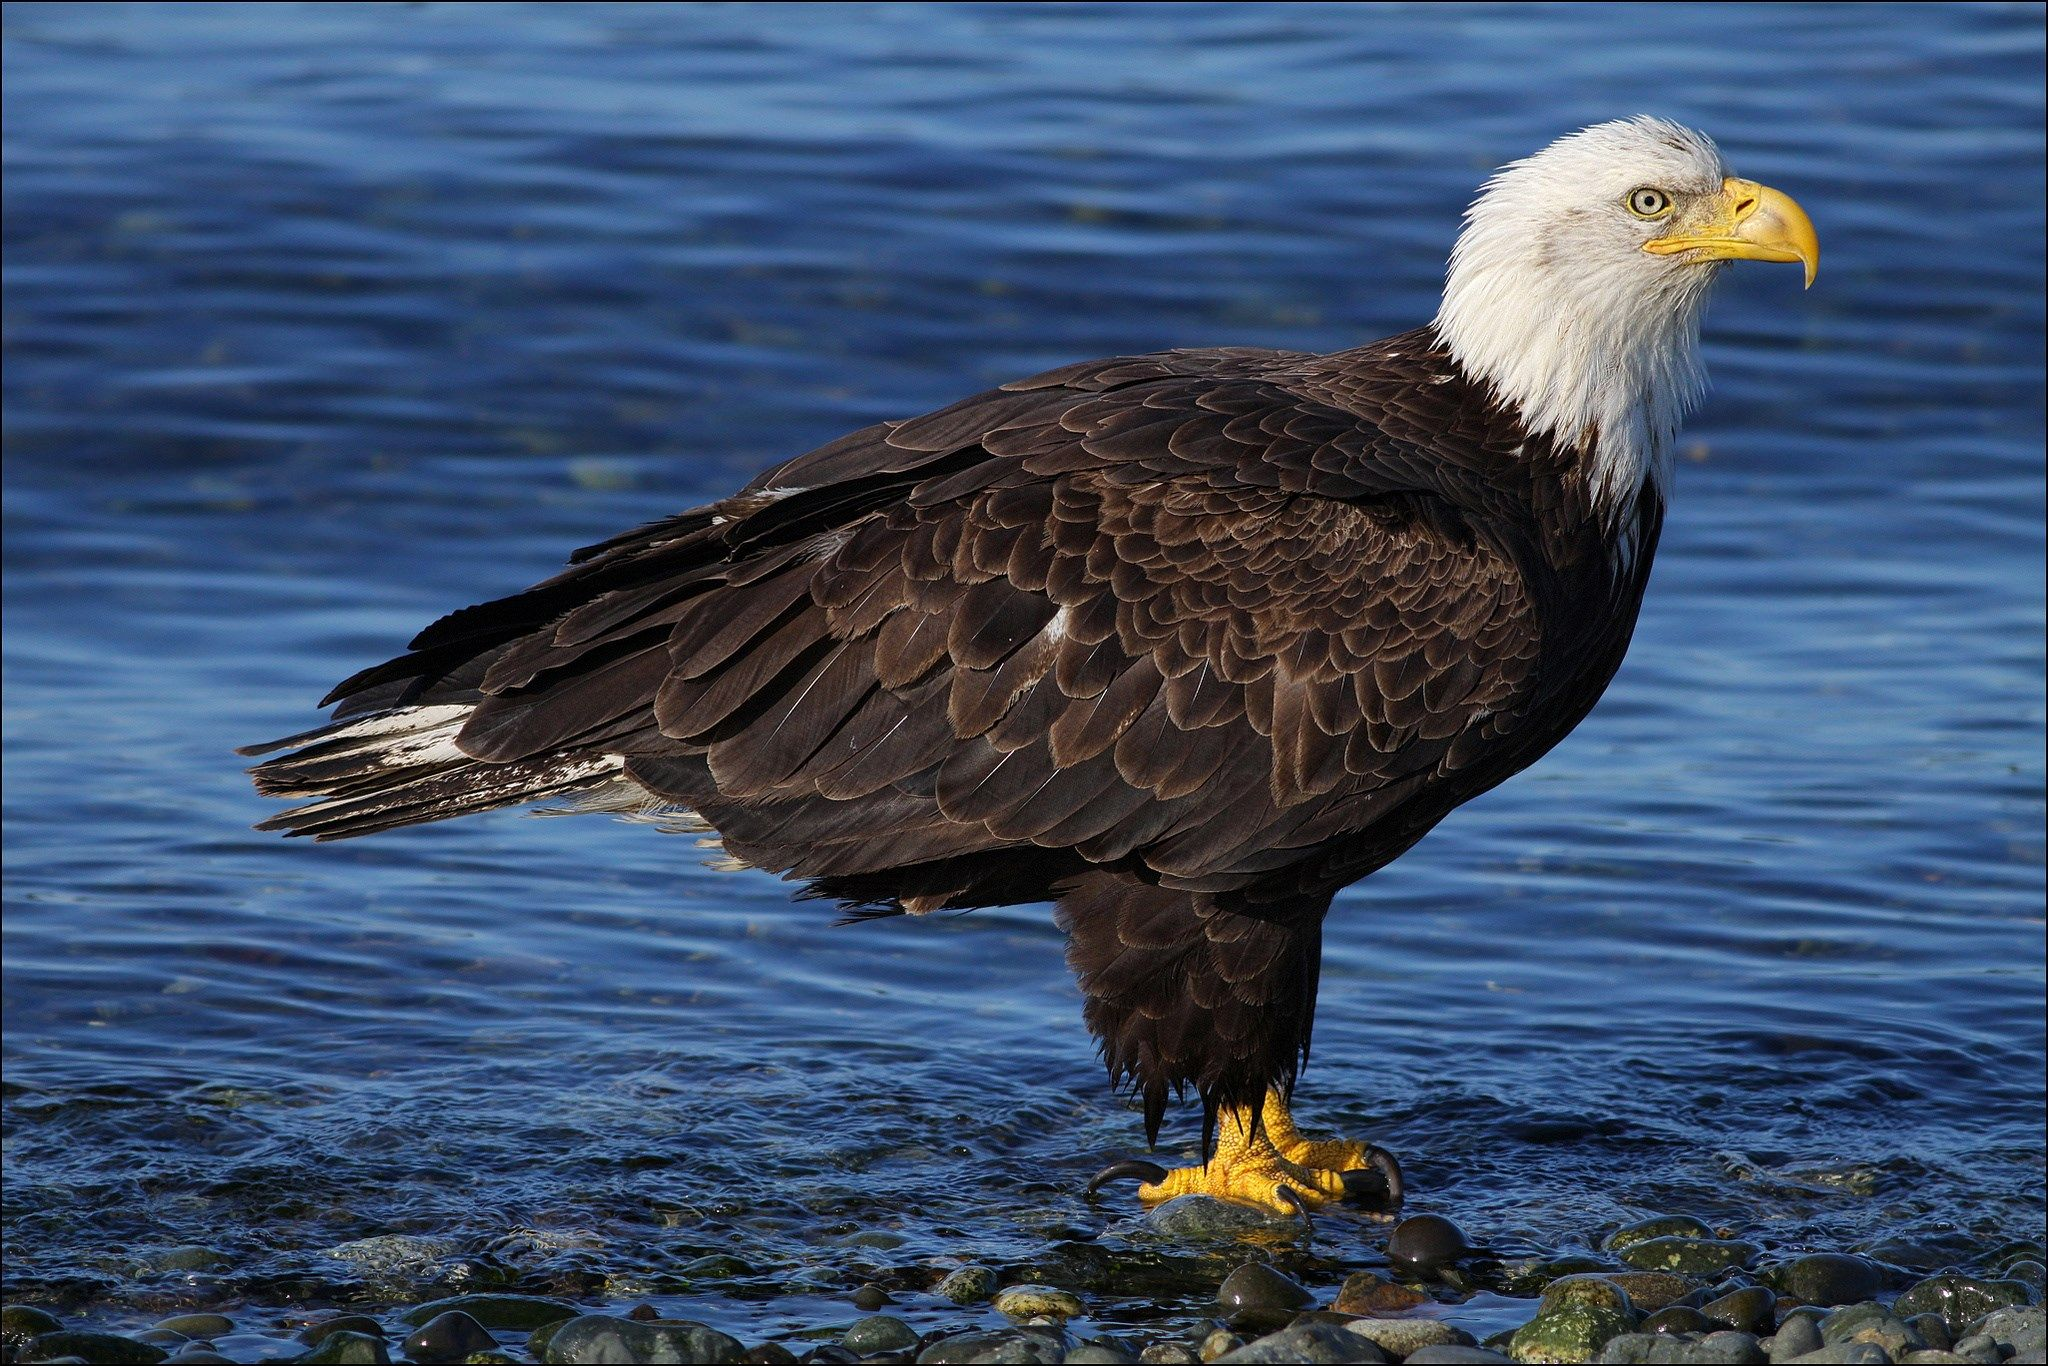 Somers chester cool bald eagle wallpaper 2048x1366 px somers chester cool bald eagle wallpaper 2048x1366 px biocorpaavc